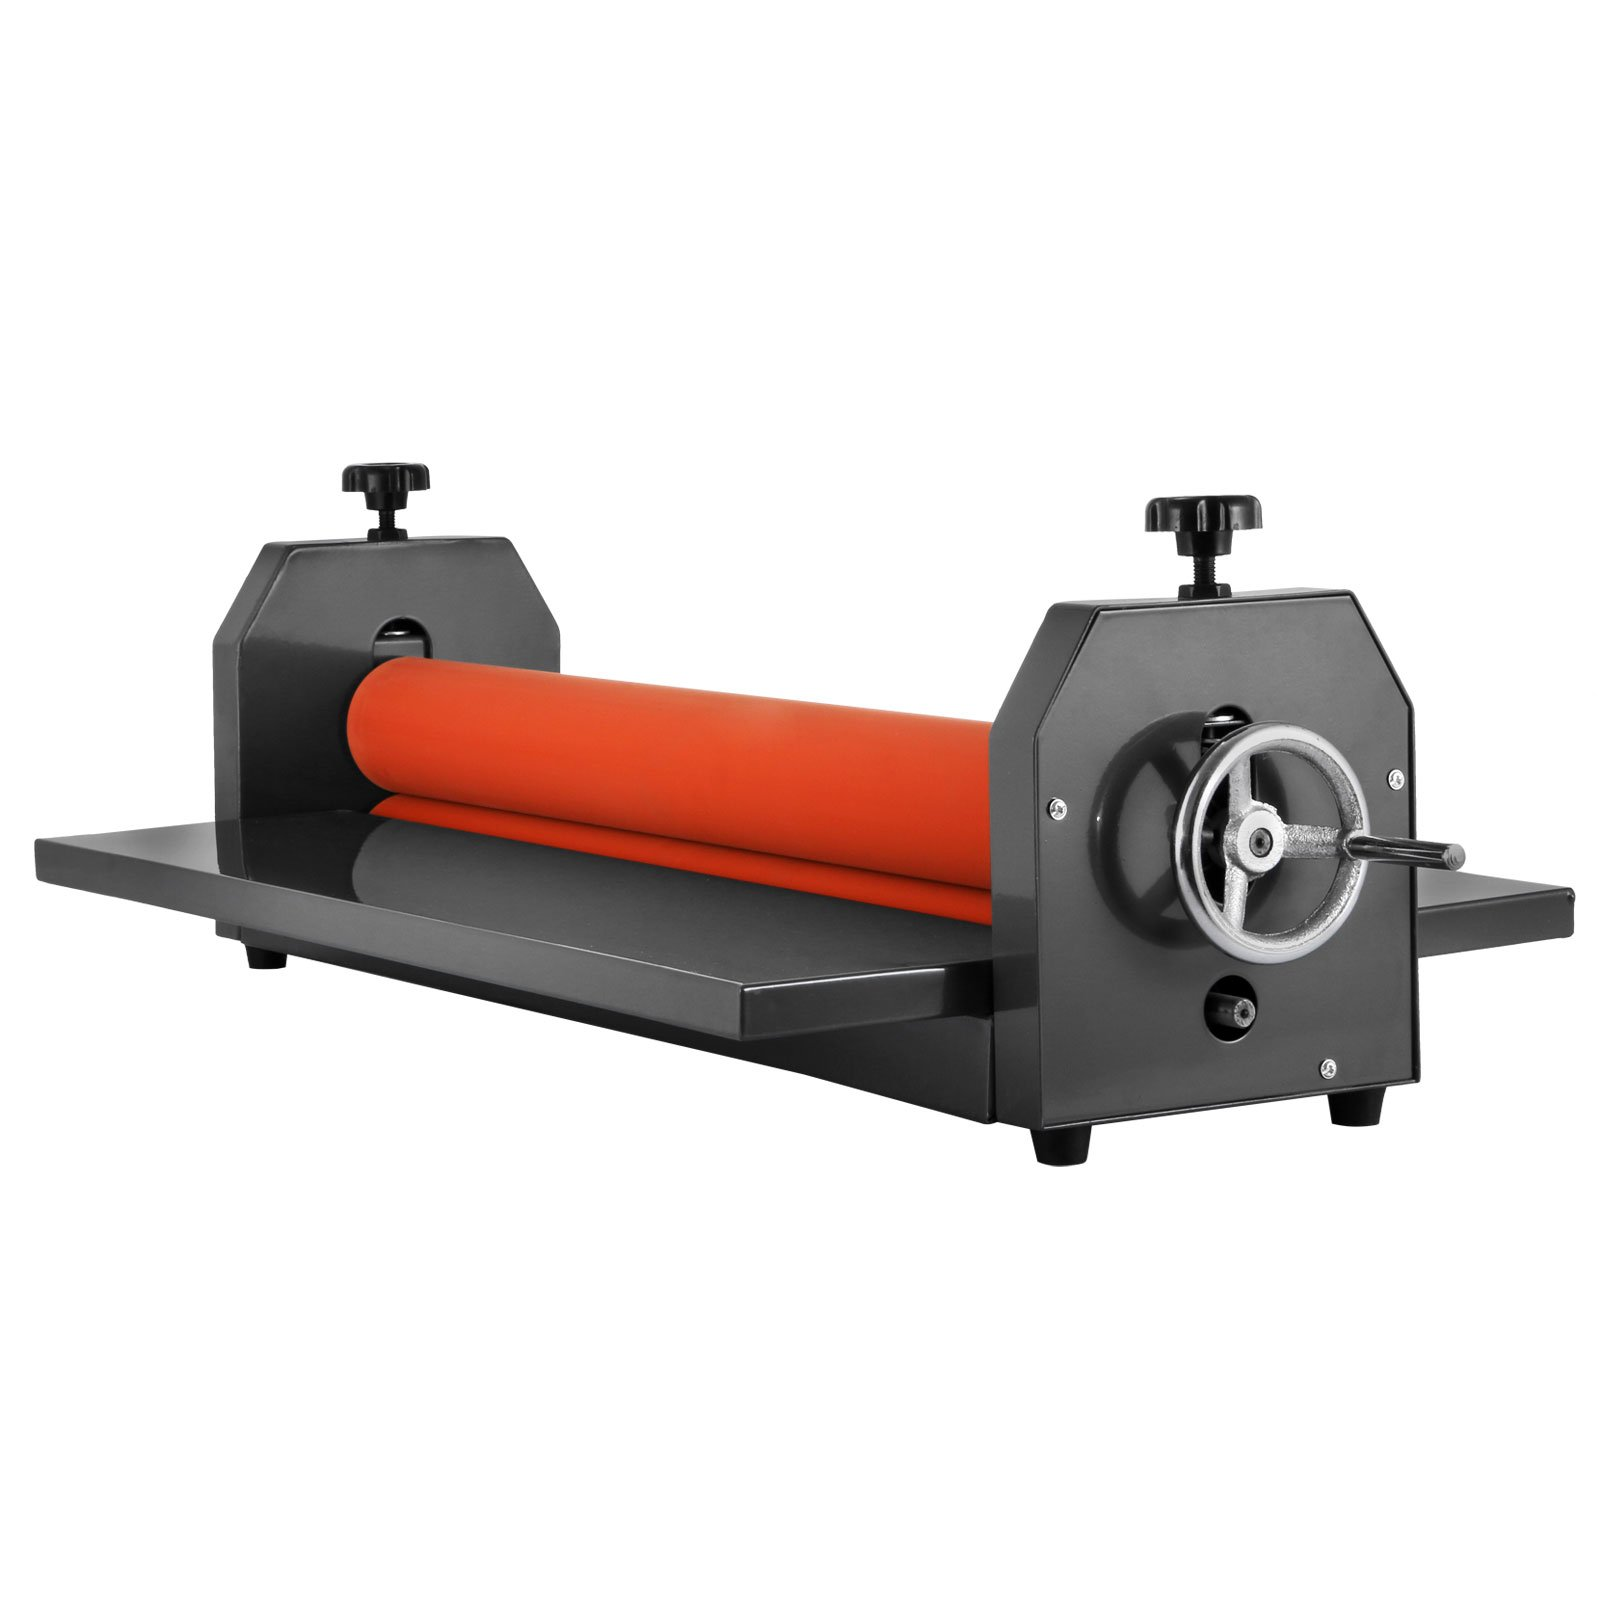 VEVOR 51'' Cold Laminator Machine 10mm Manual Vinyl Photo Film Cold laminator Hand Crank Pressure Cold Roll laminator(51'') by VEVOR (Image #2)